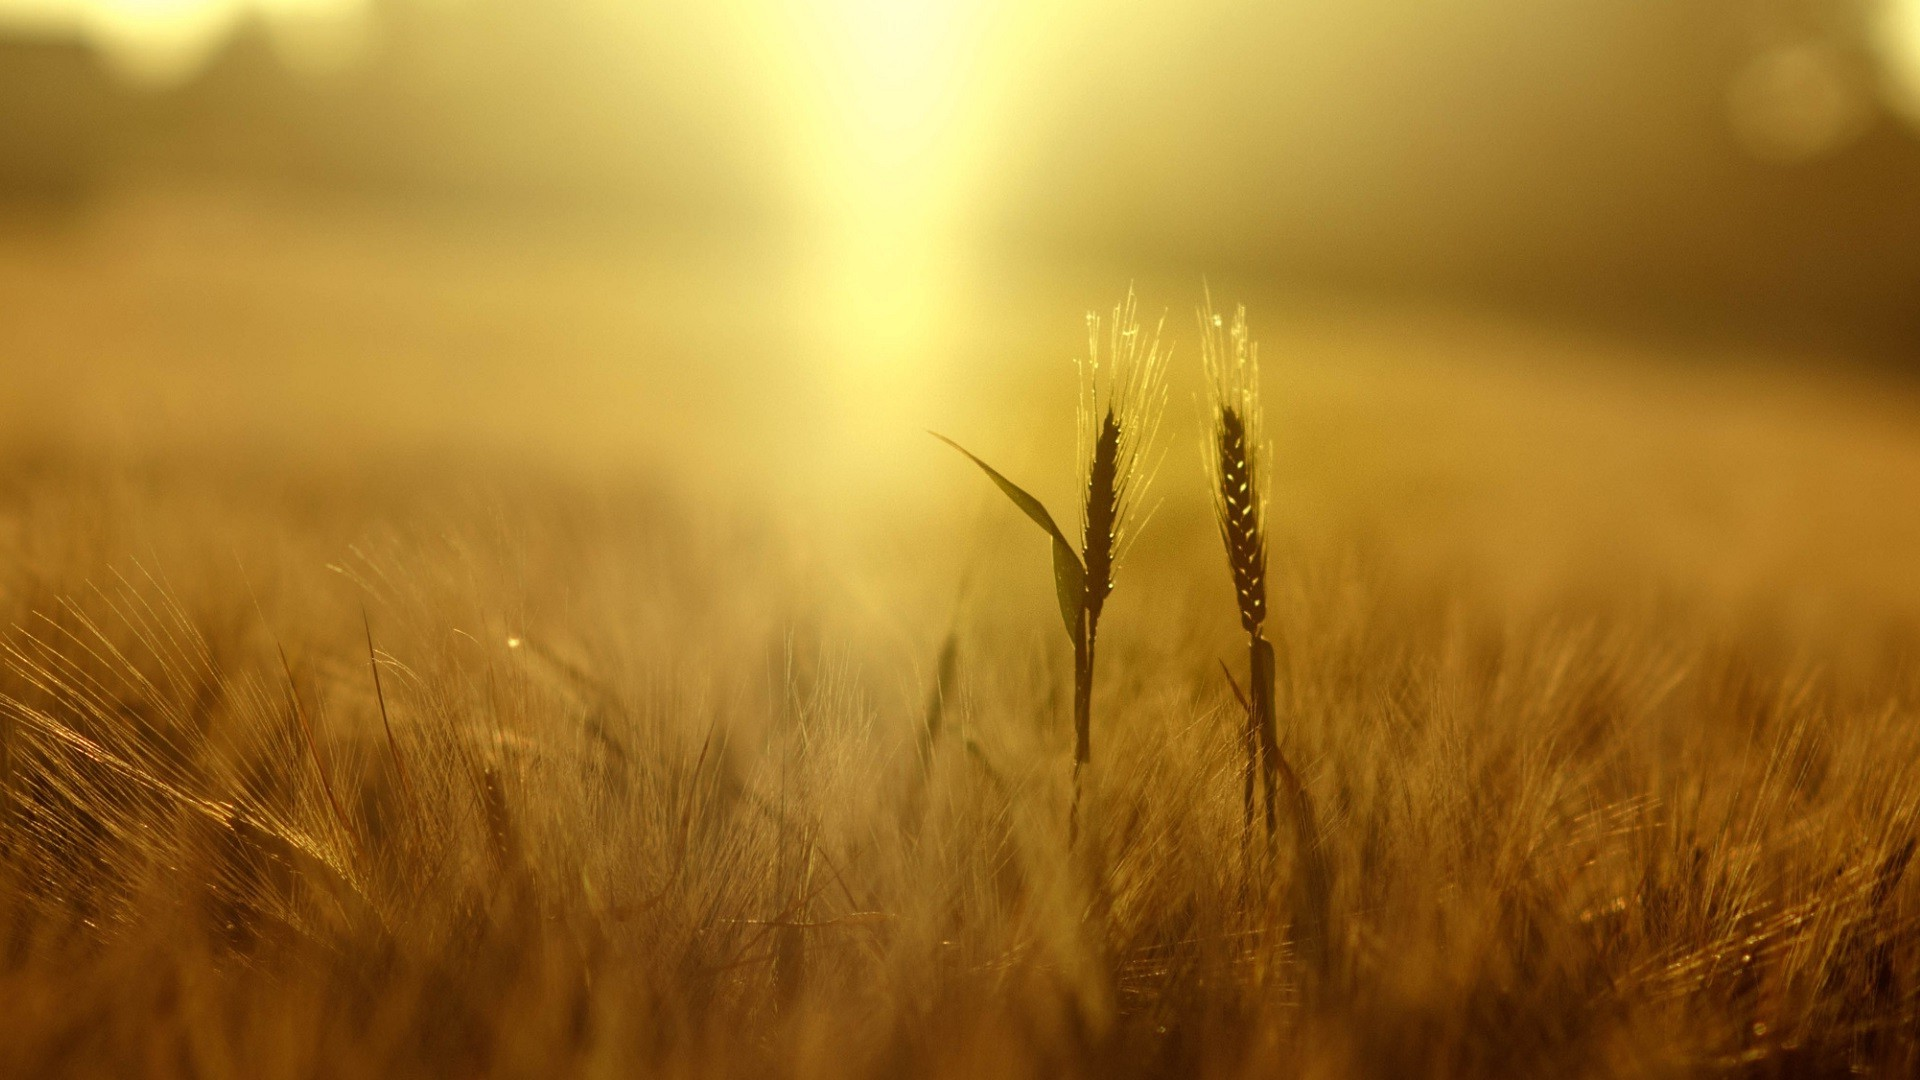 Animal Farm Wallpaper Wheat Plants Nature Field Depth Of Field Yellow